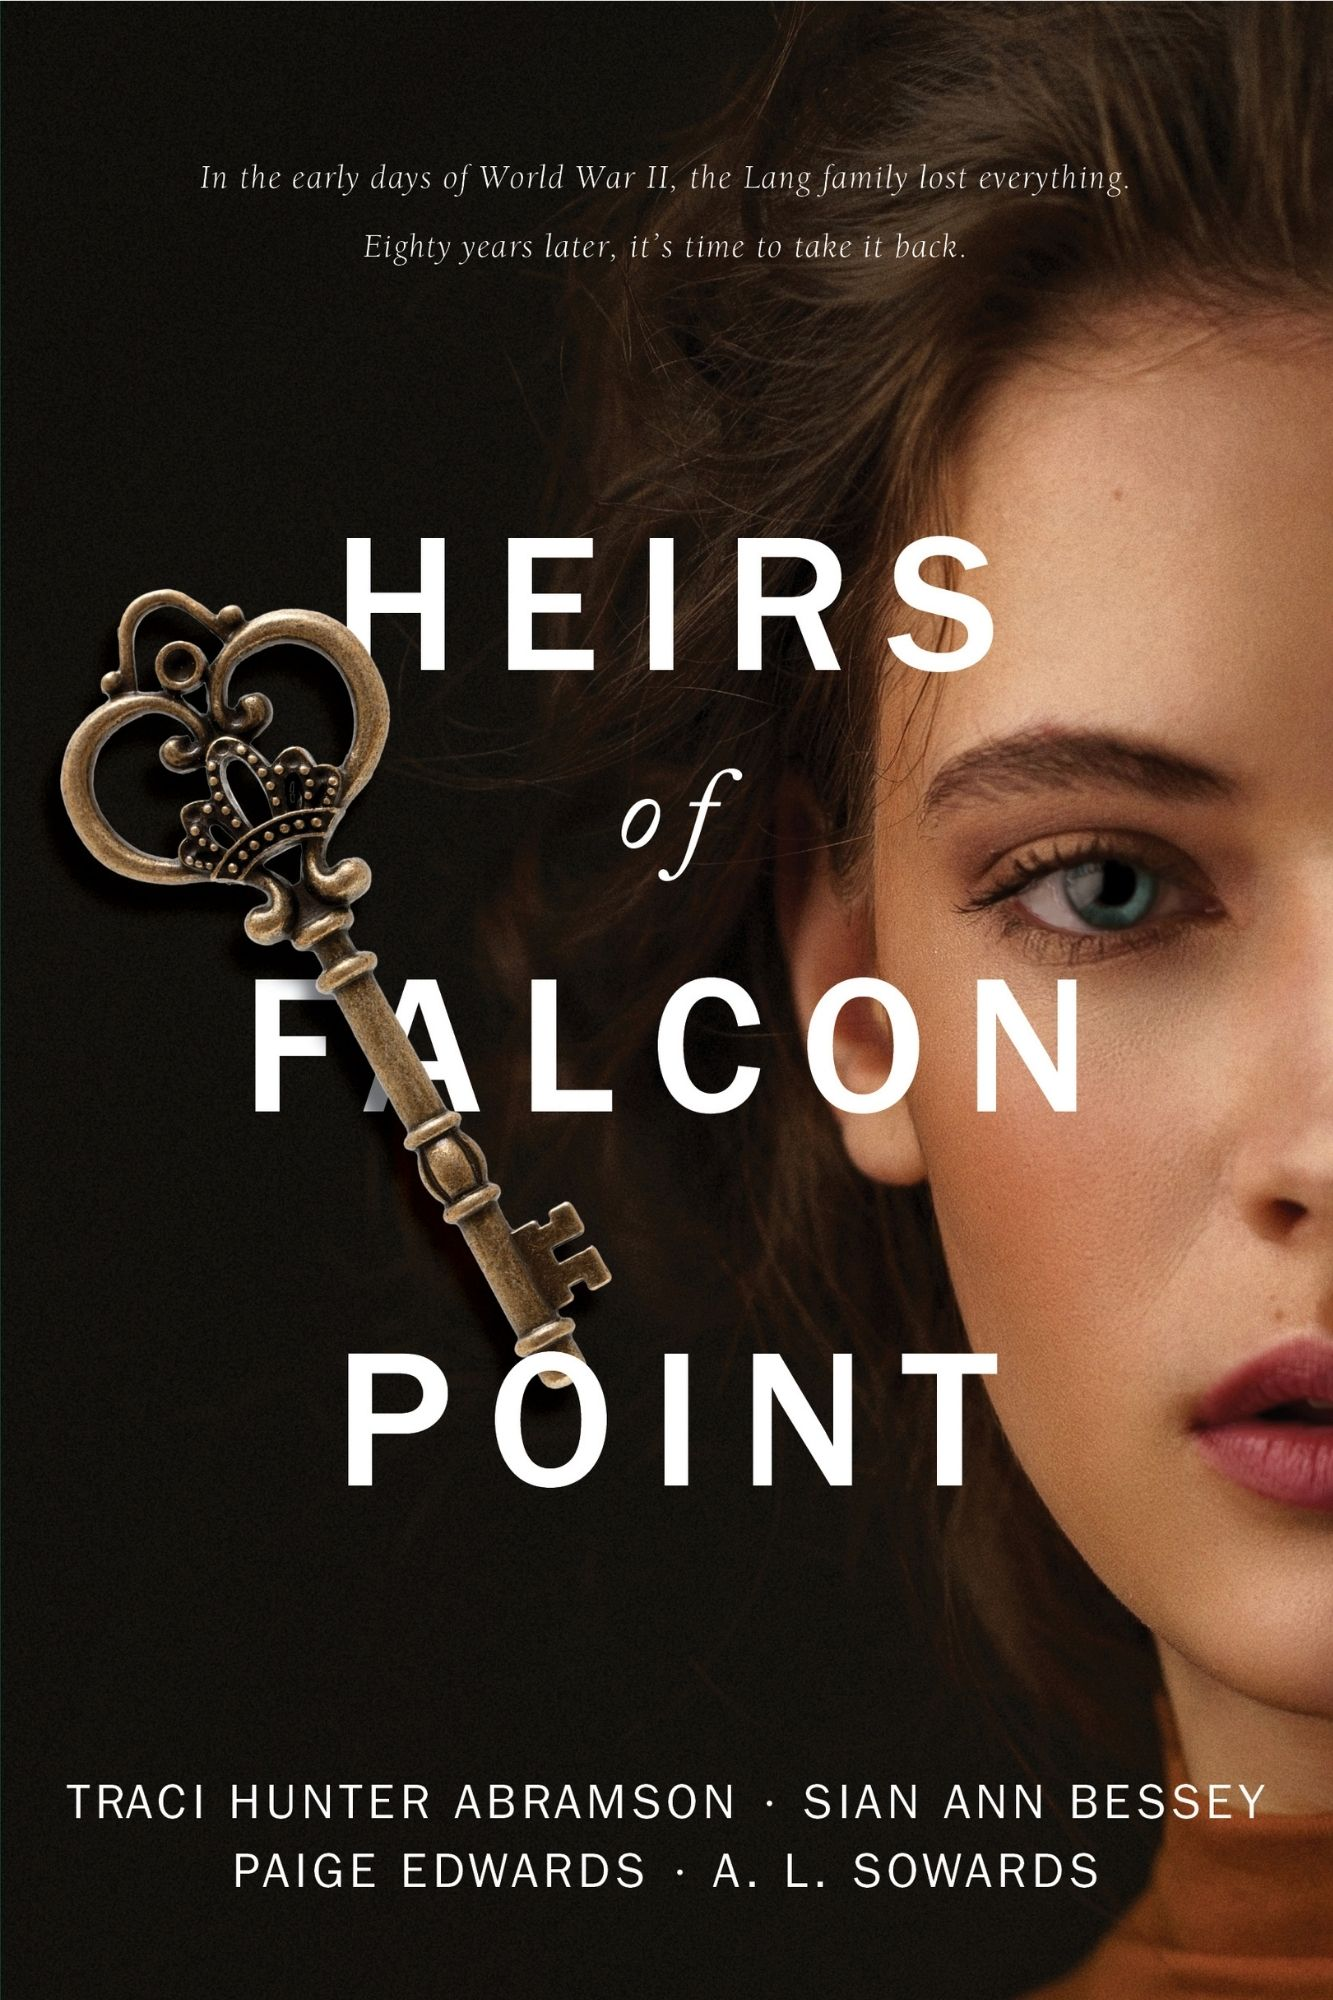 heirs-of-falcon-point-web